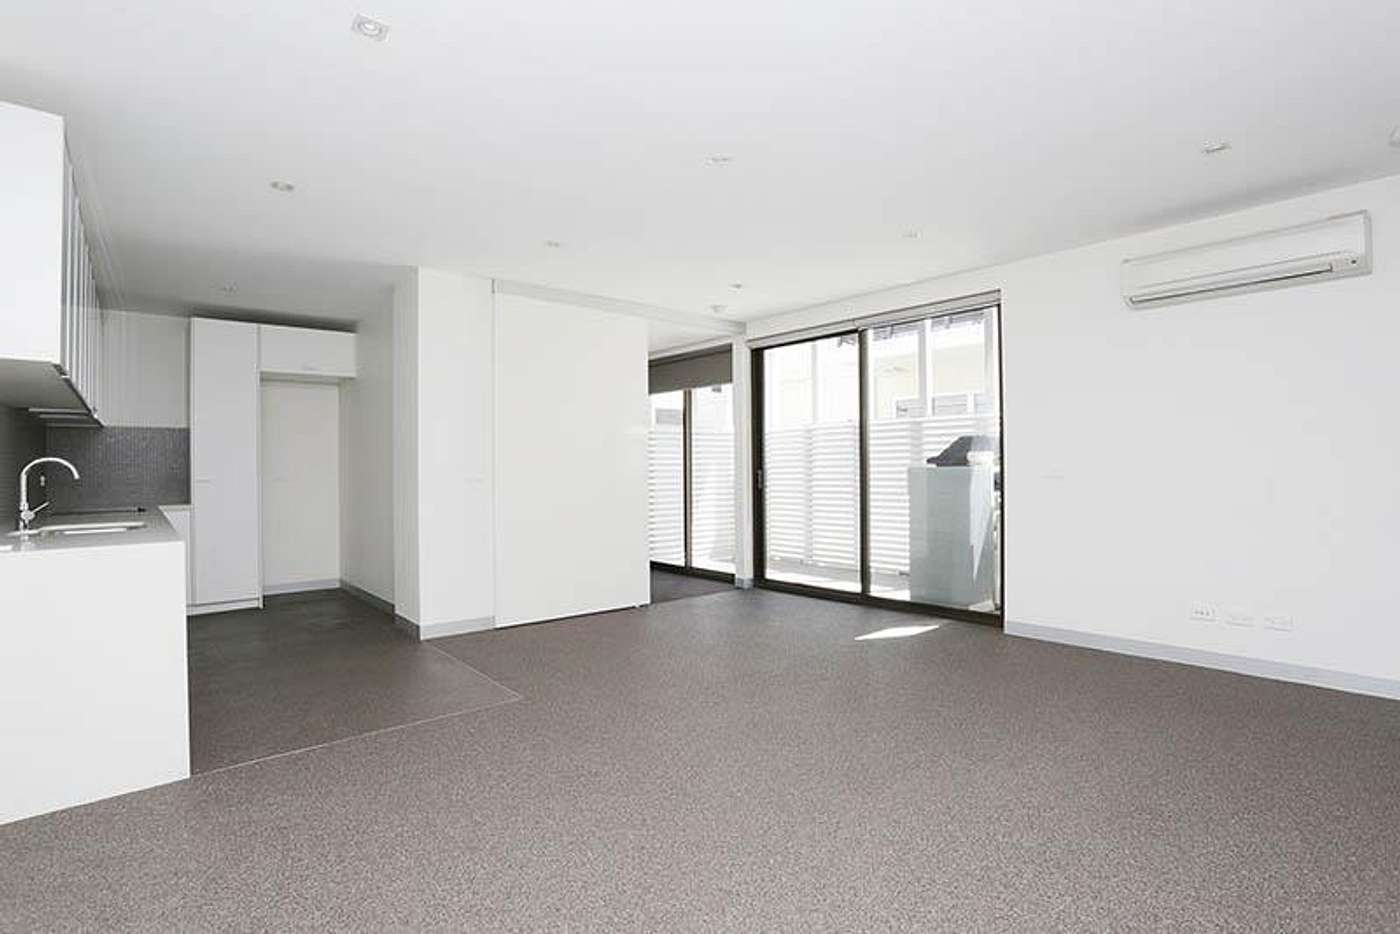 Main view of Homely apartment listing, 23/18 Stanley Street, Collingwood VIC 3066